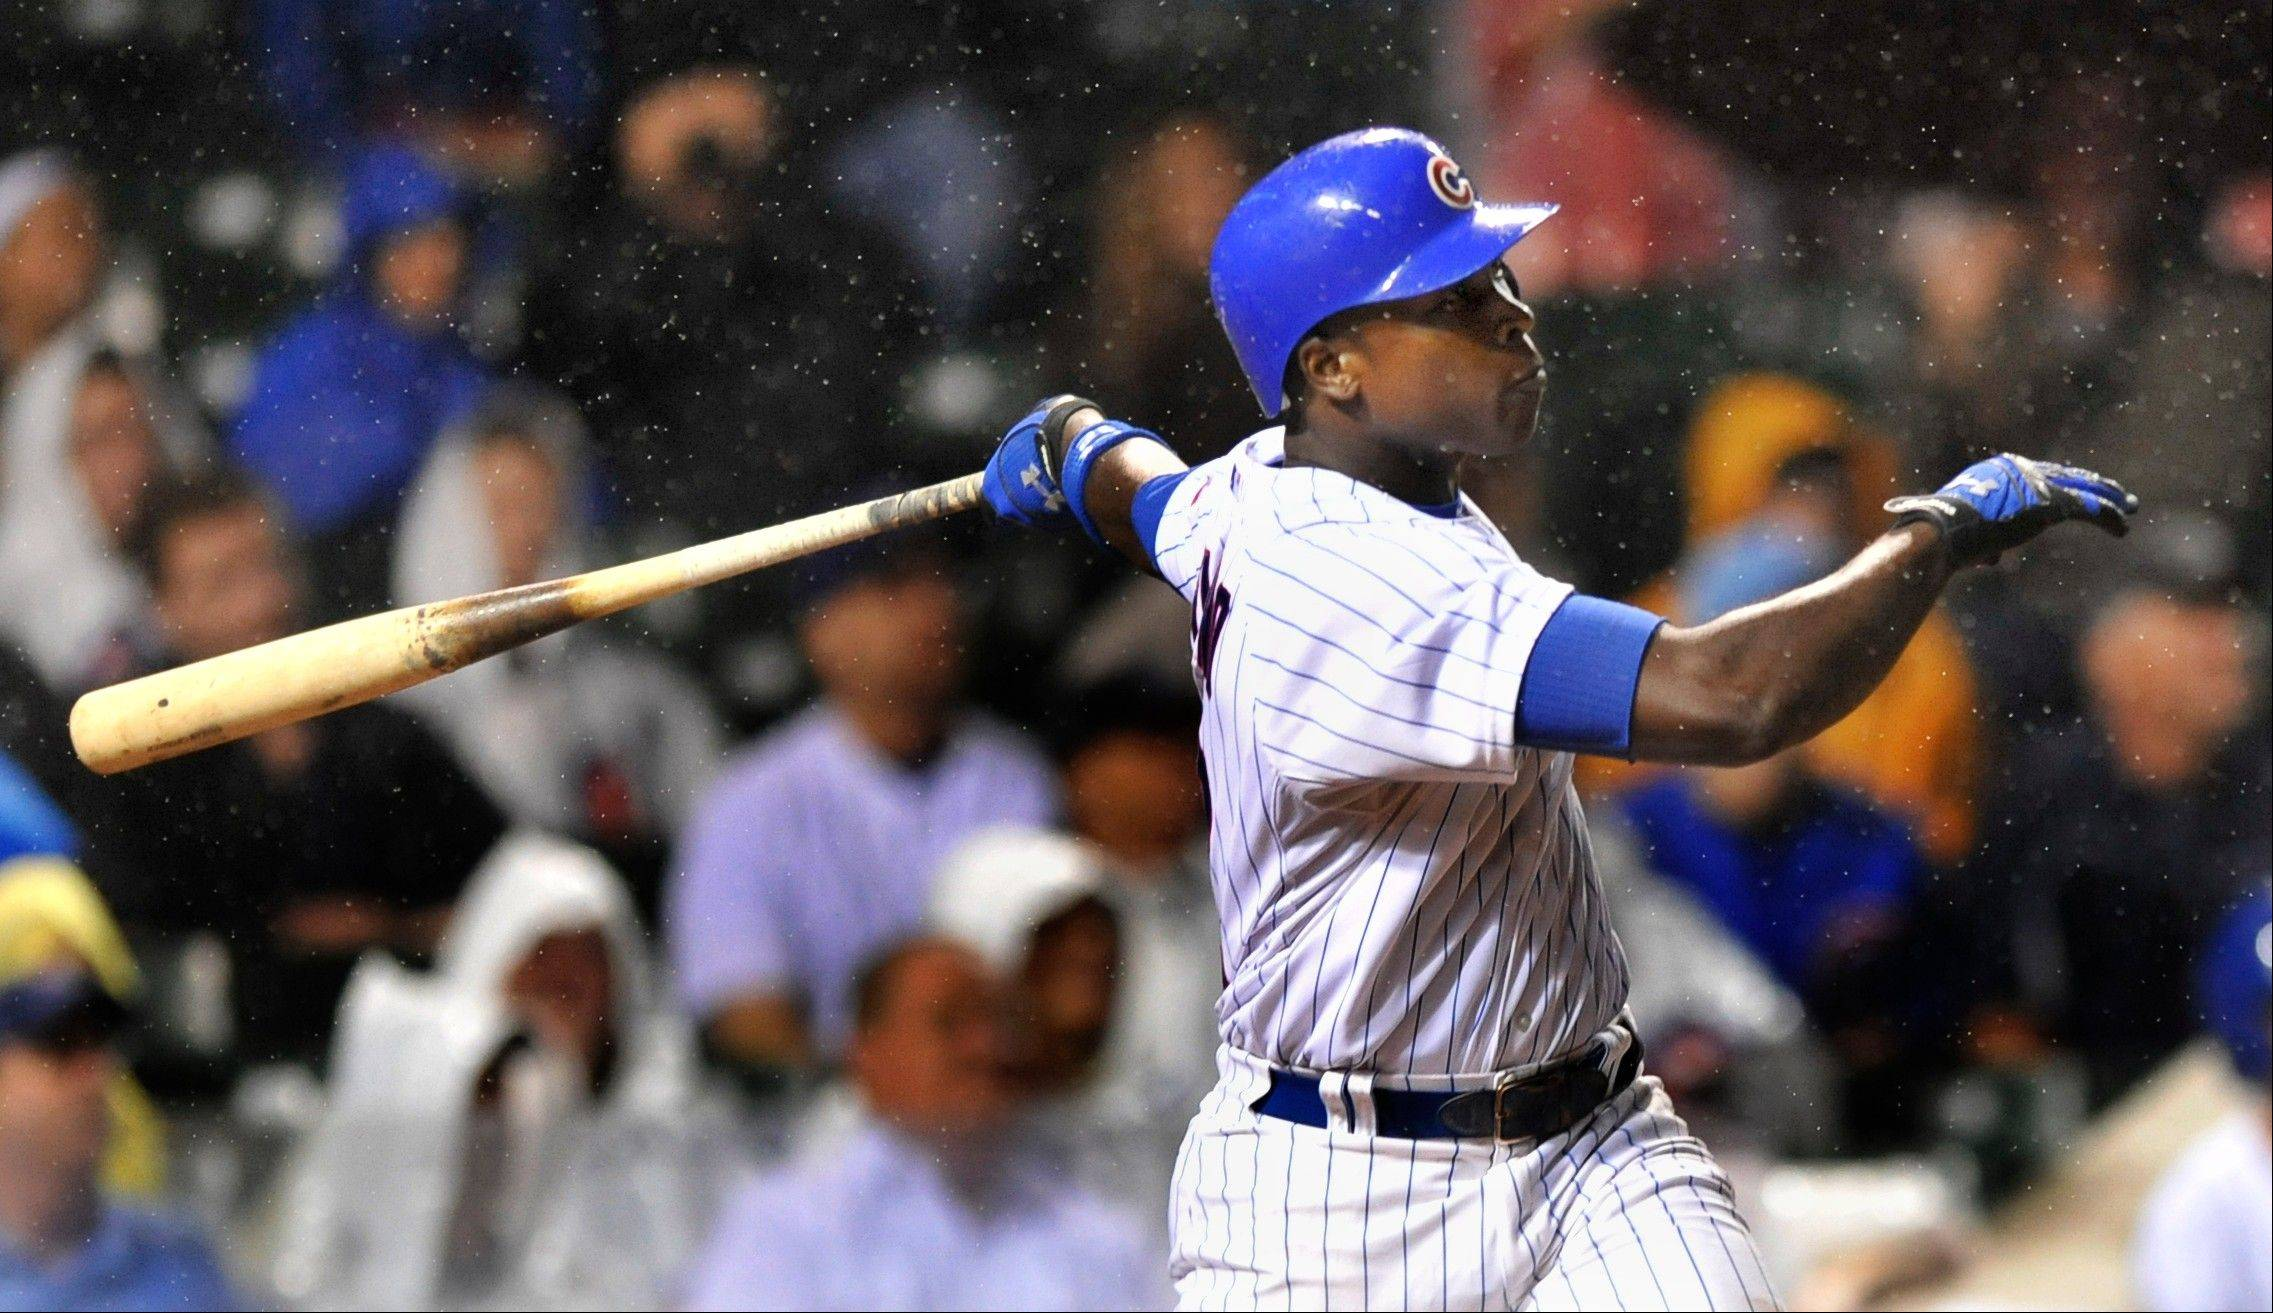 Chicago Cubs' Alfonso Soriano watches his two run home run against the Cincinnati Reds in the eighth inning during a MLB baseball game in Chicago, Thursday, Aug. 9, 2012. (AP Photo/Paul Beaty)